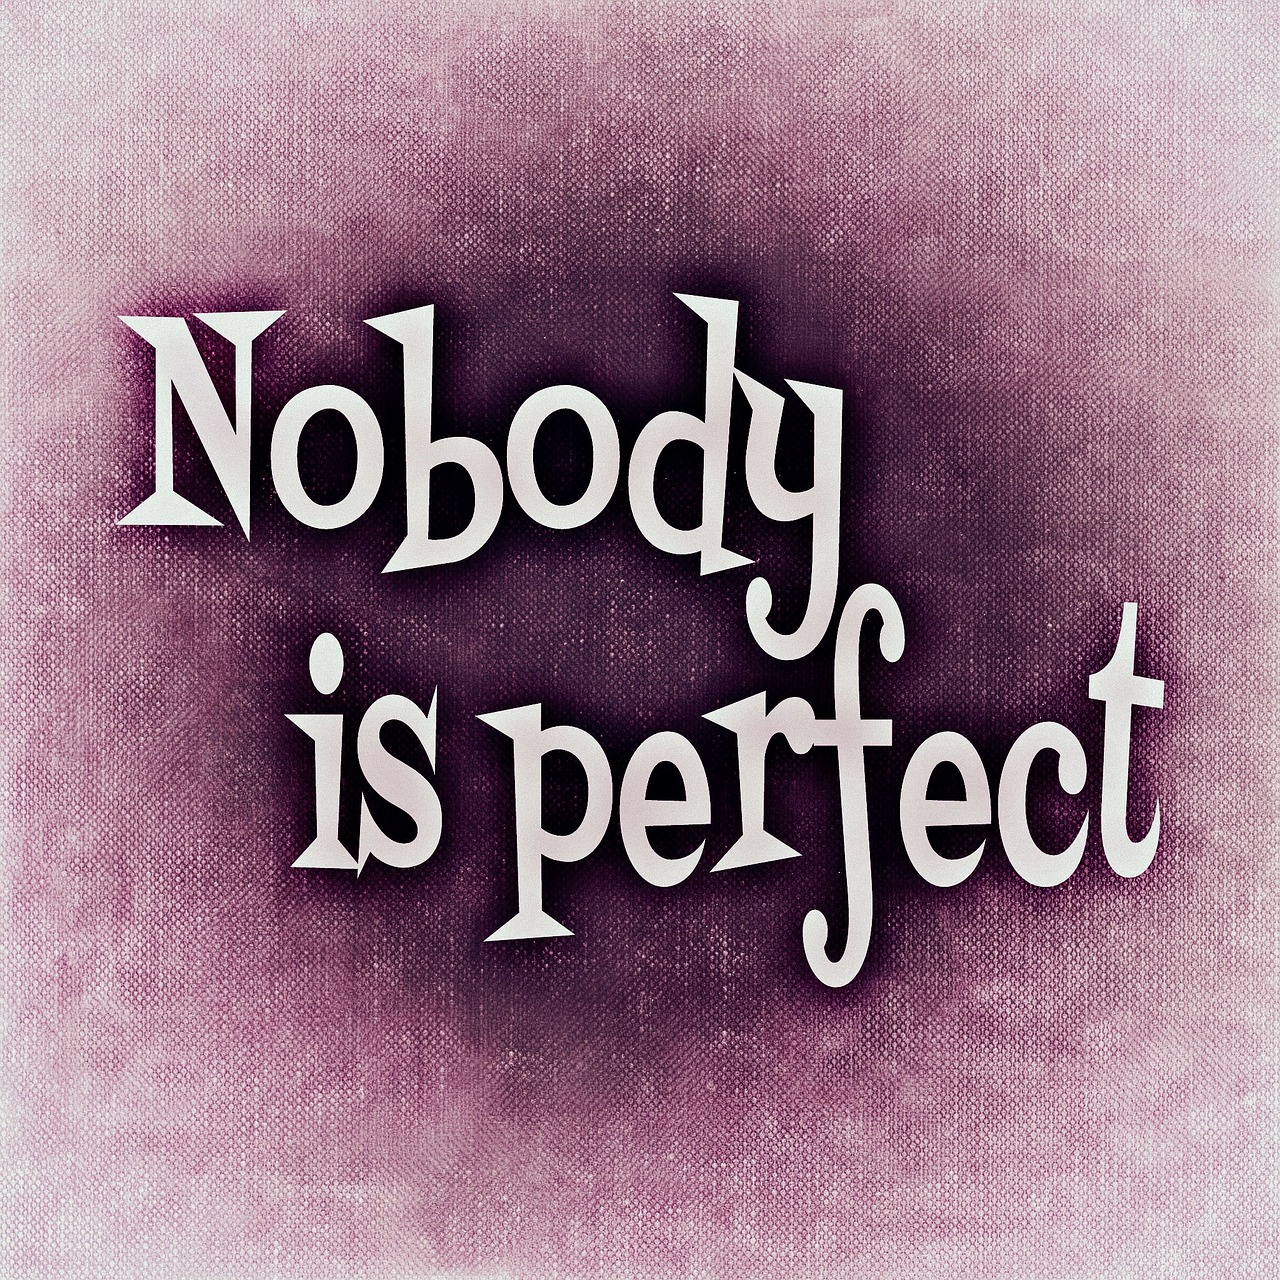 nobody-is-perfect-688366_1280